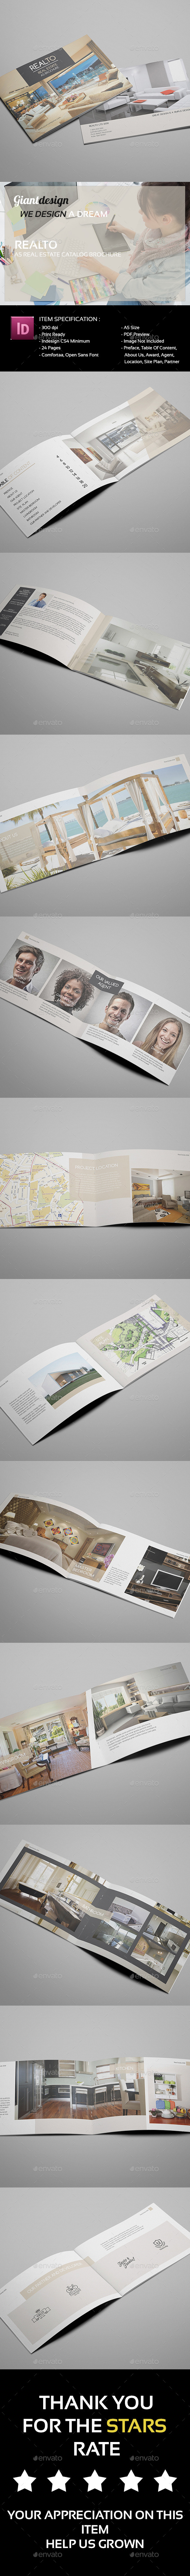 GraphicRiver Realto A5 Real Estate Catalog Brochure 10682433